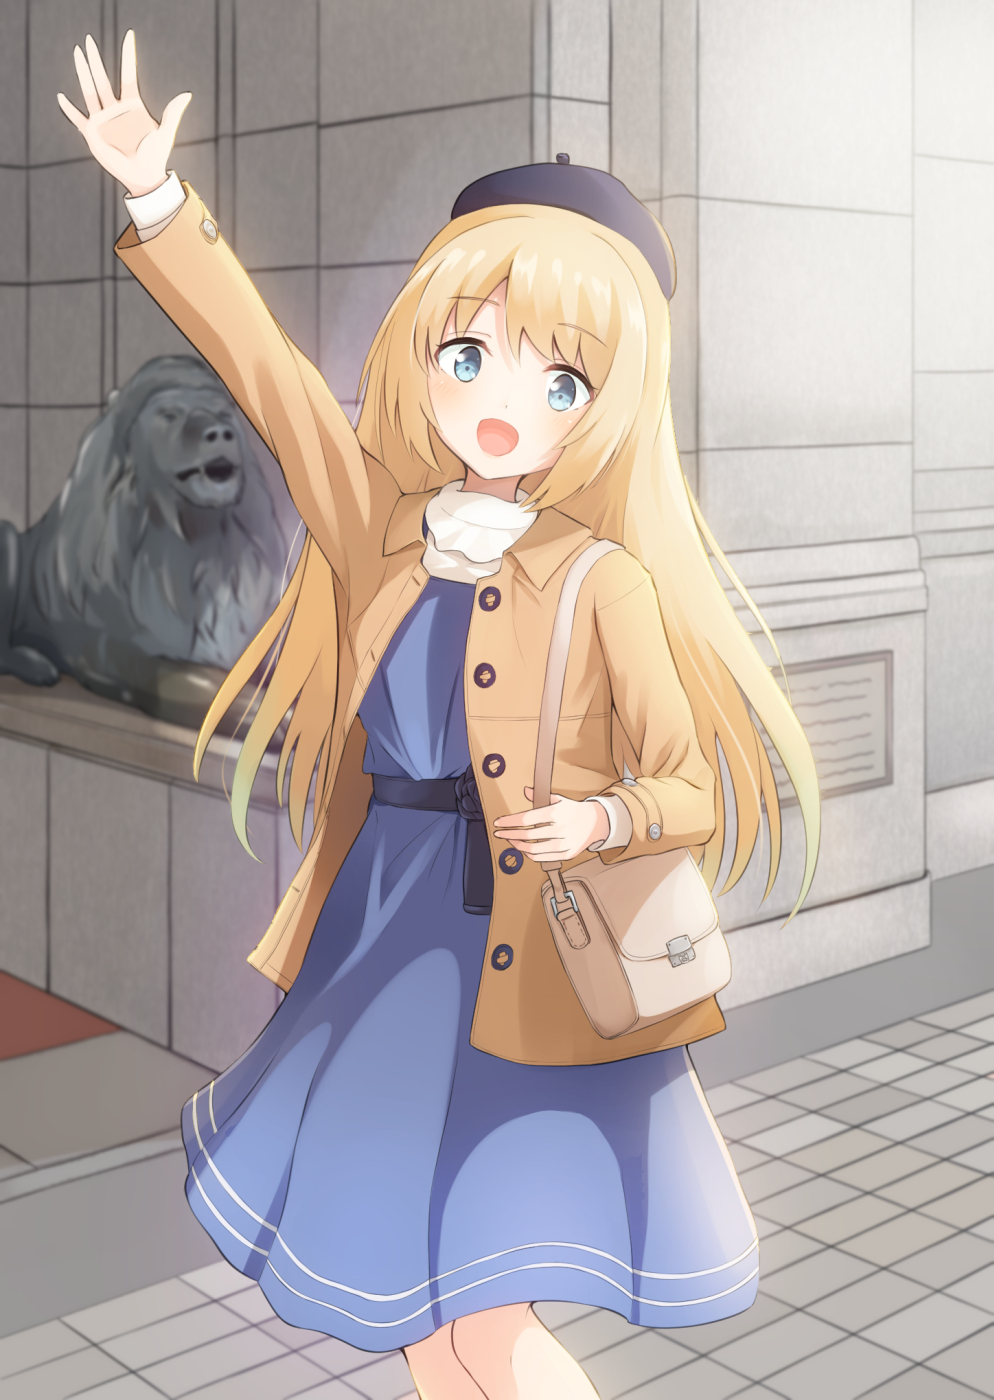 1girl alternate_costume bag beret blonde_hair blue_dress blue_eyes blue_headwear brown_jacket cowboy_shot dress hat highres jacket jervis_(kantai_collection) kantai_collection lion long_hair looking_at_viewer ochikata_kage smile solo standing statue waving